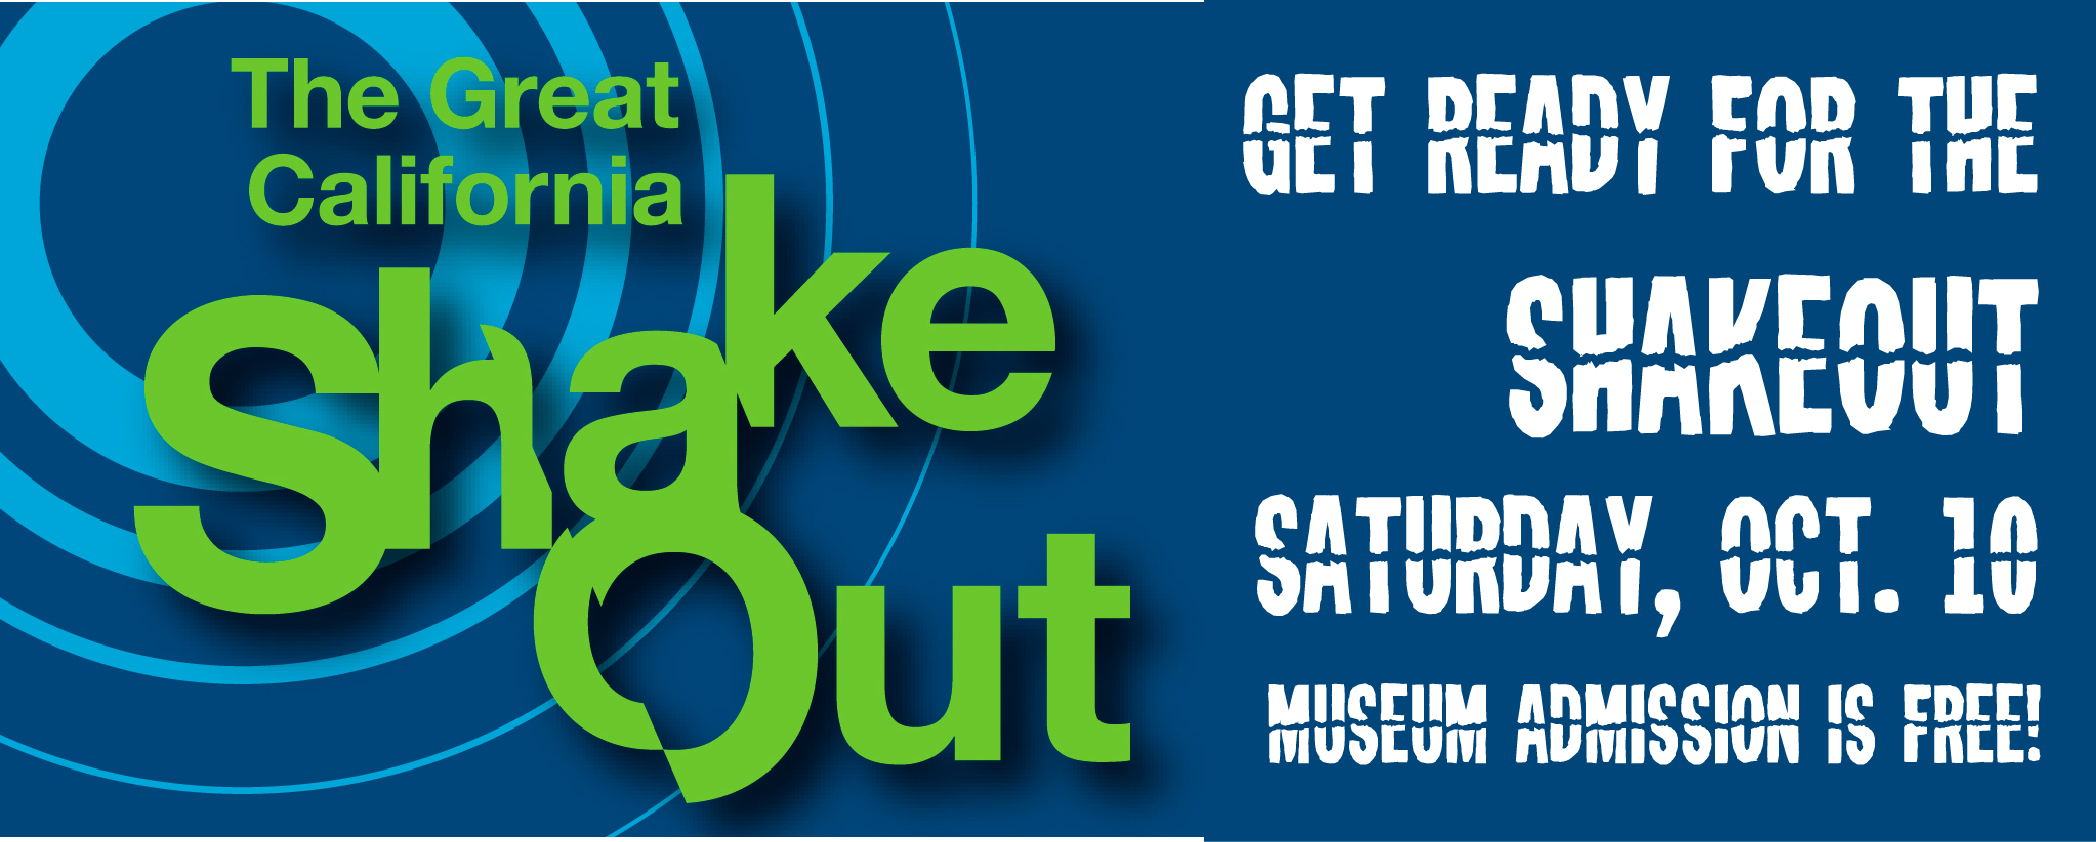 shakeout county museum